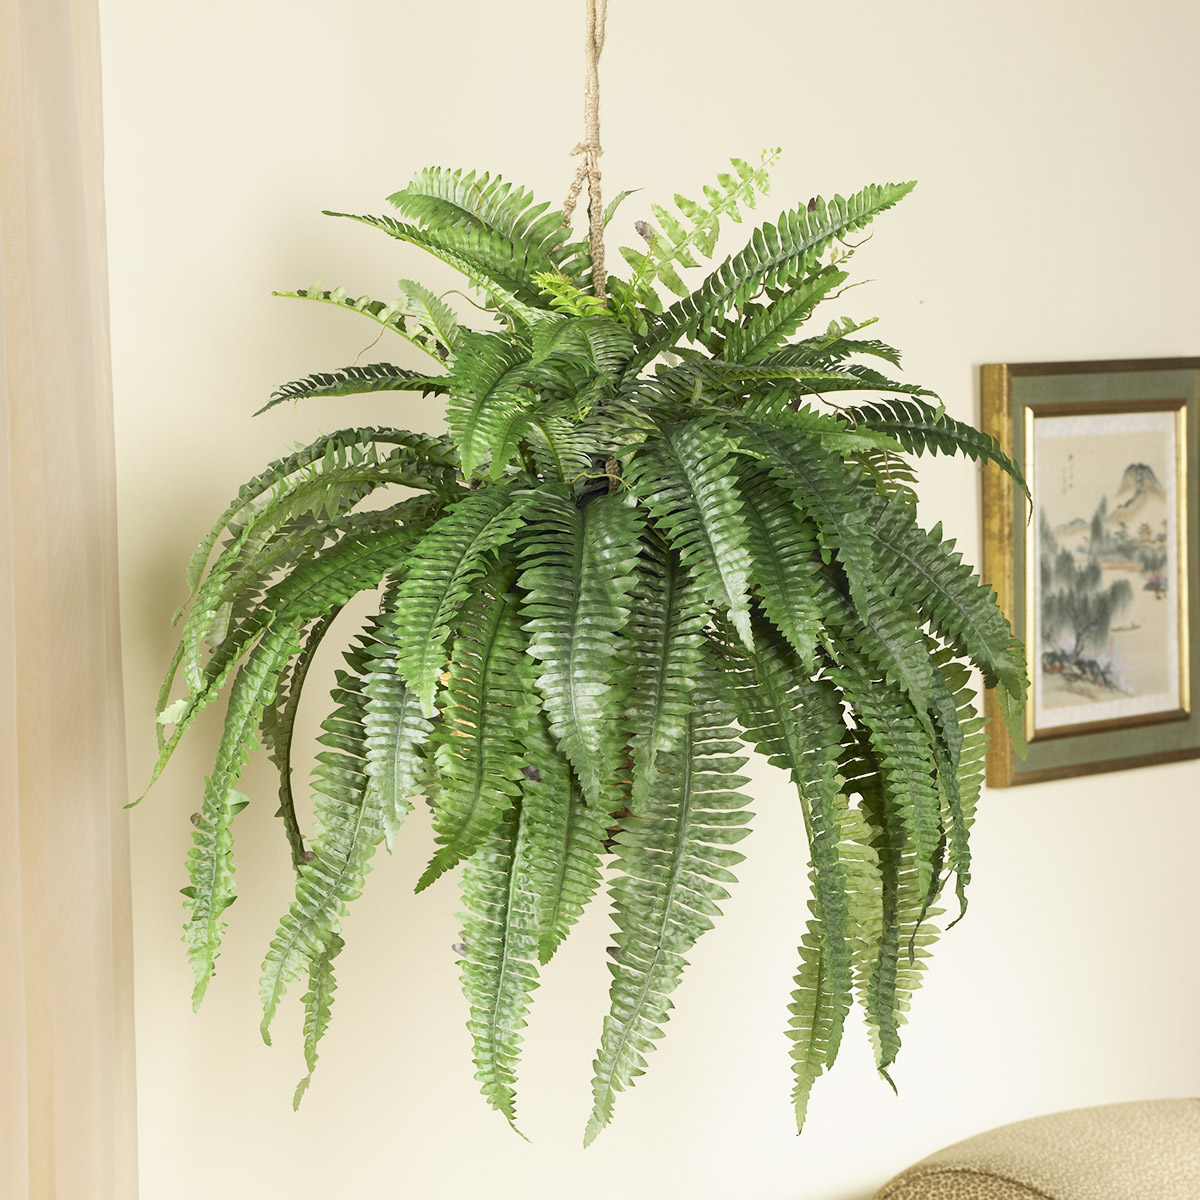 Hanging fake fern